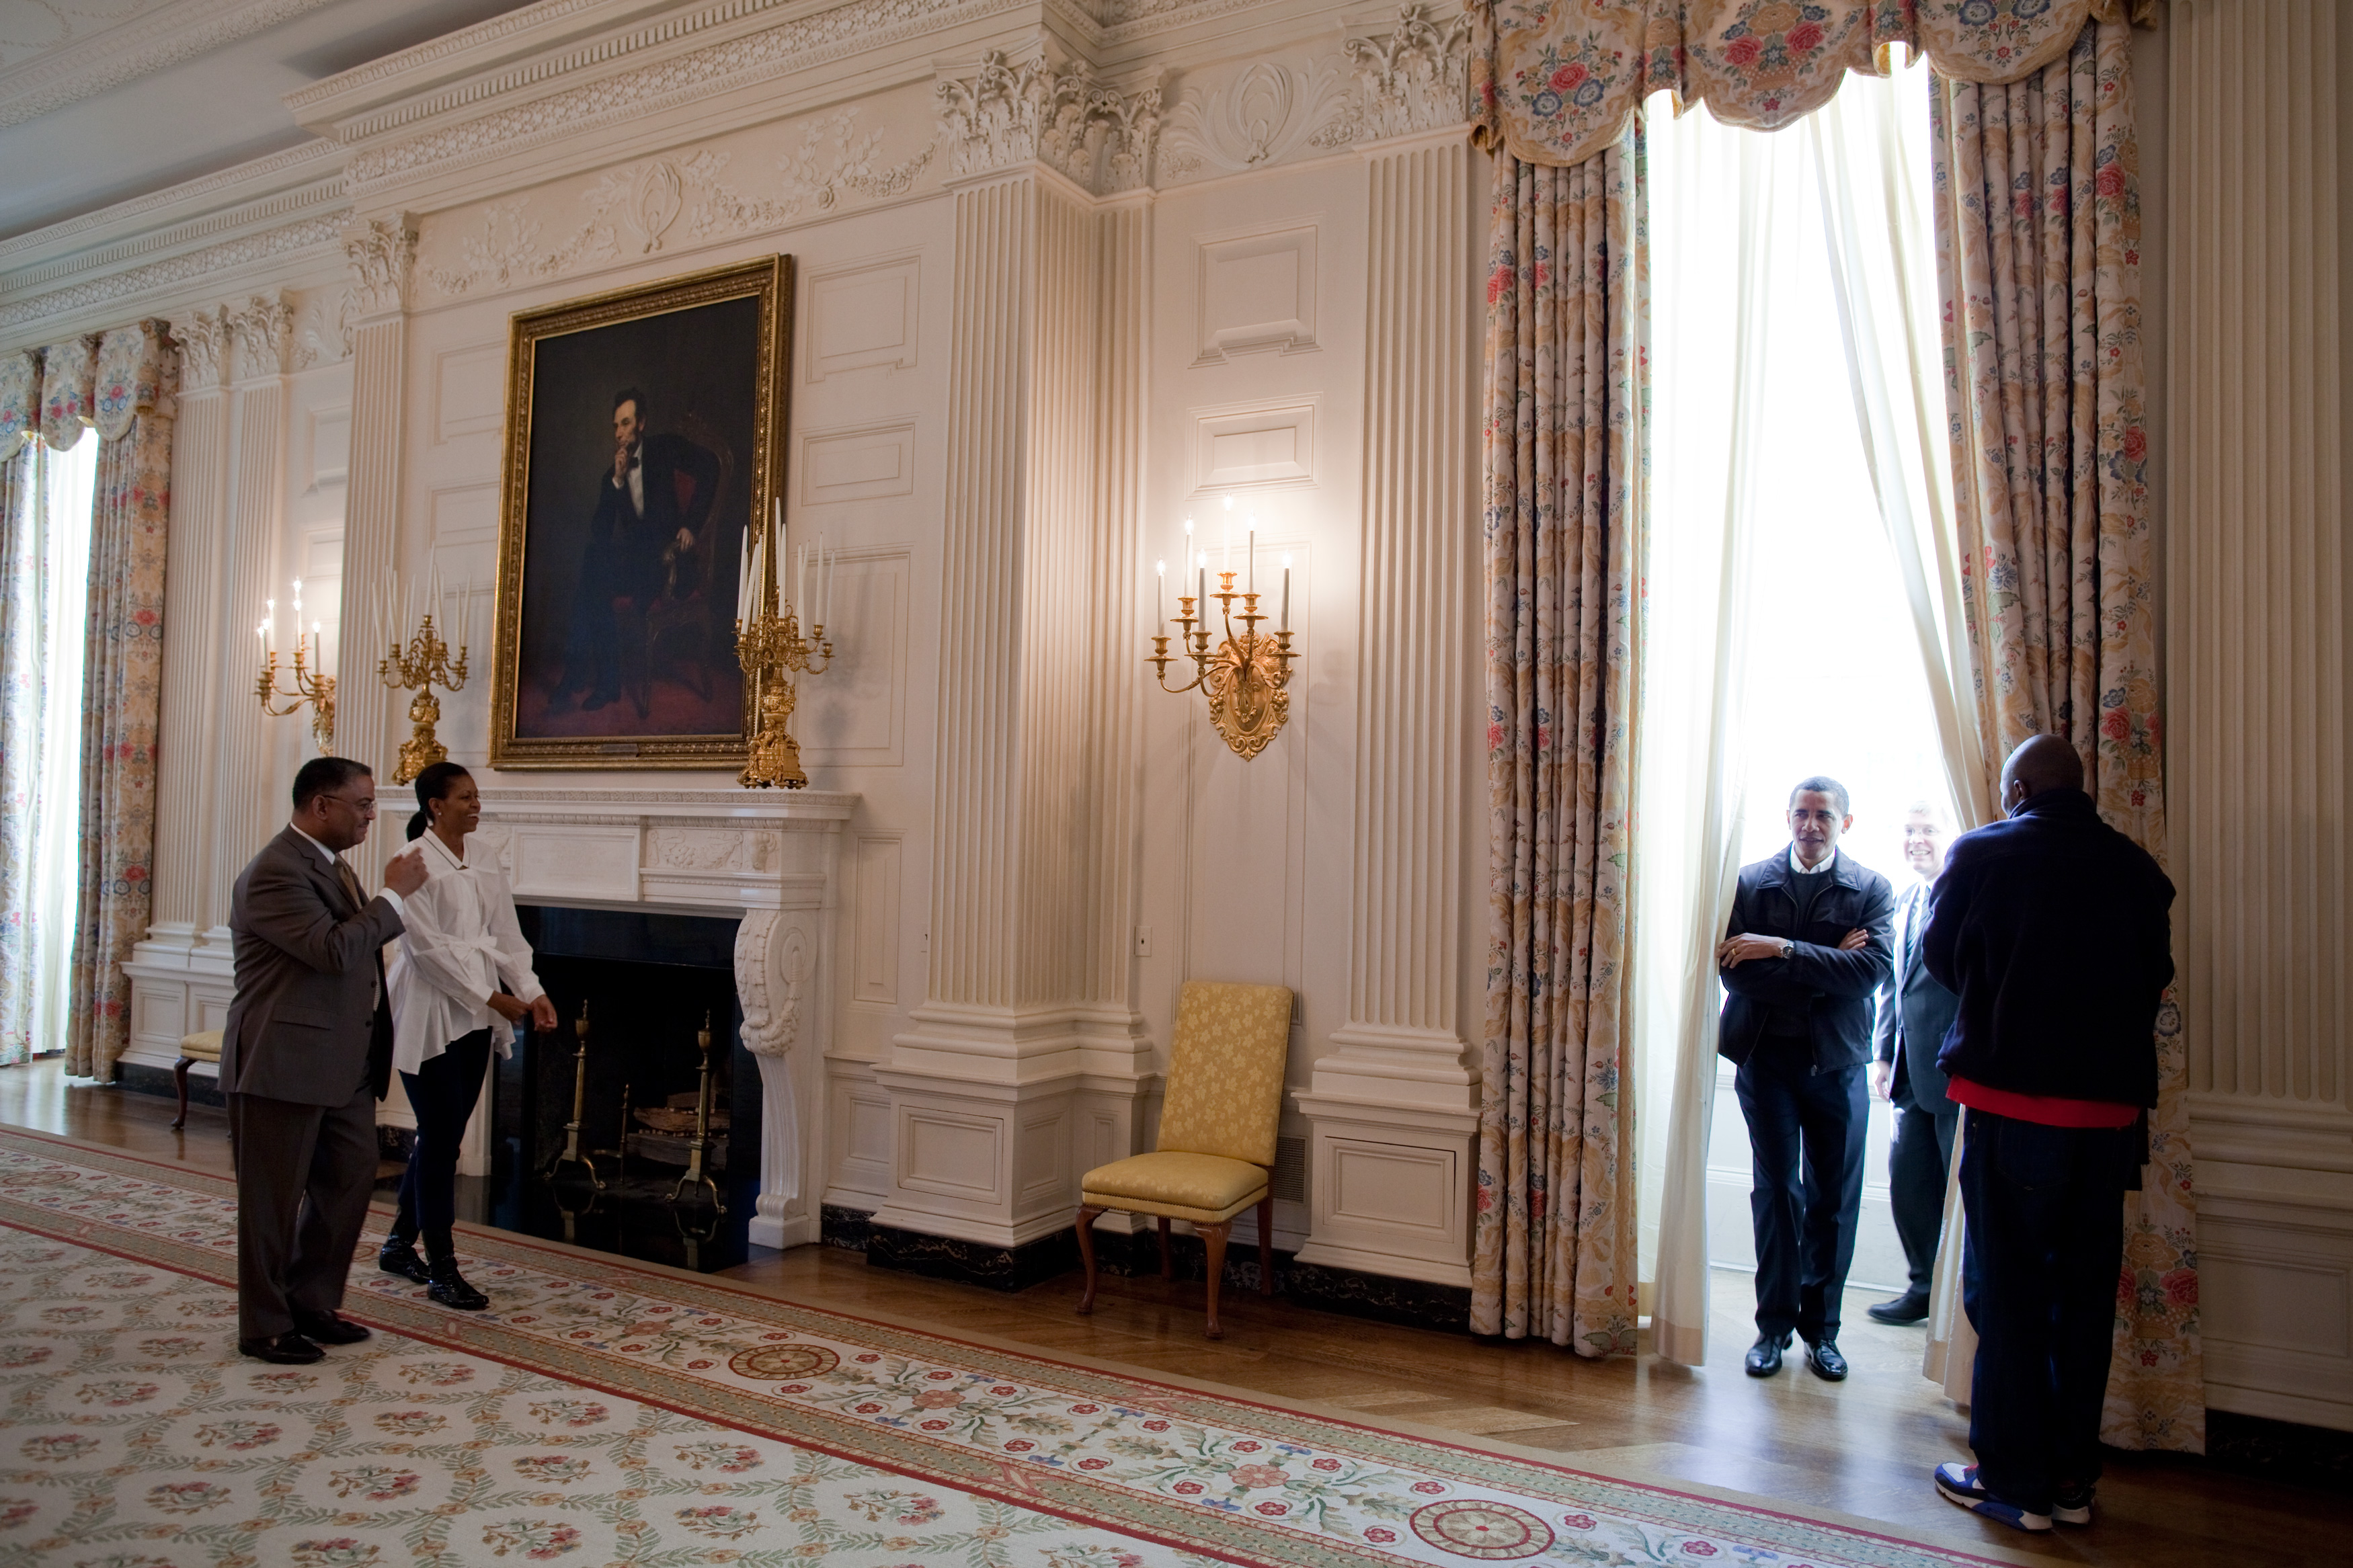 William g allman wikipedia president barack obama and first lady michelle obama tour the state dining room with white house chief usher admiral stephen steve rochon left dzzzfo